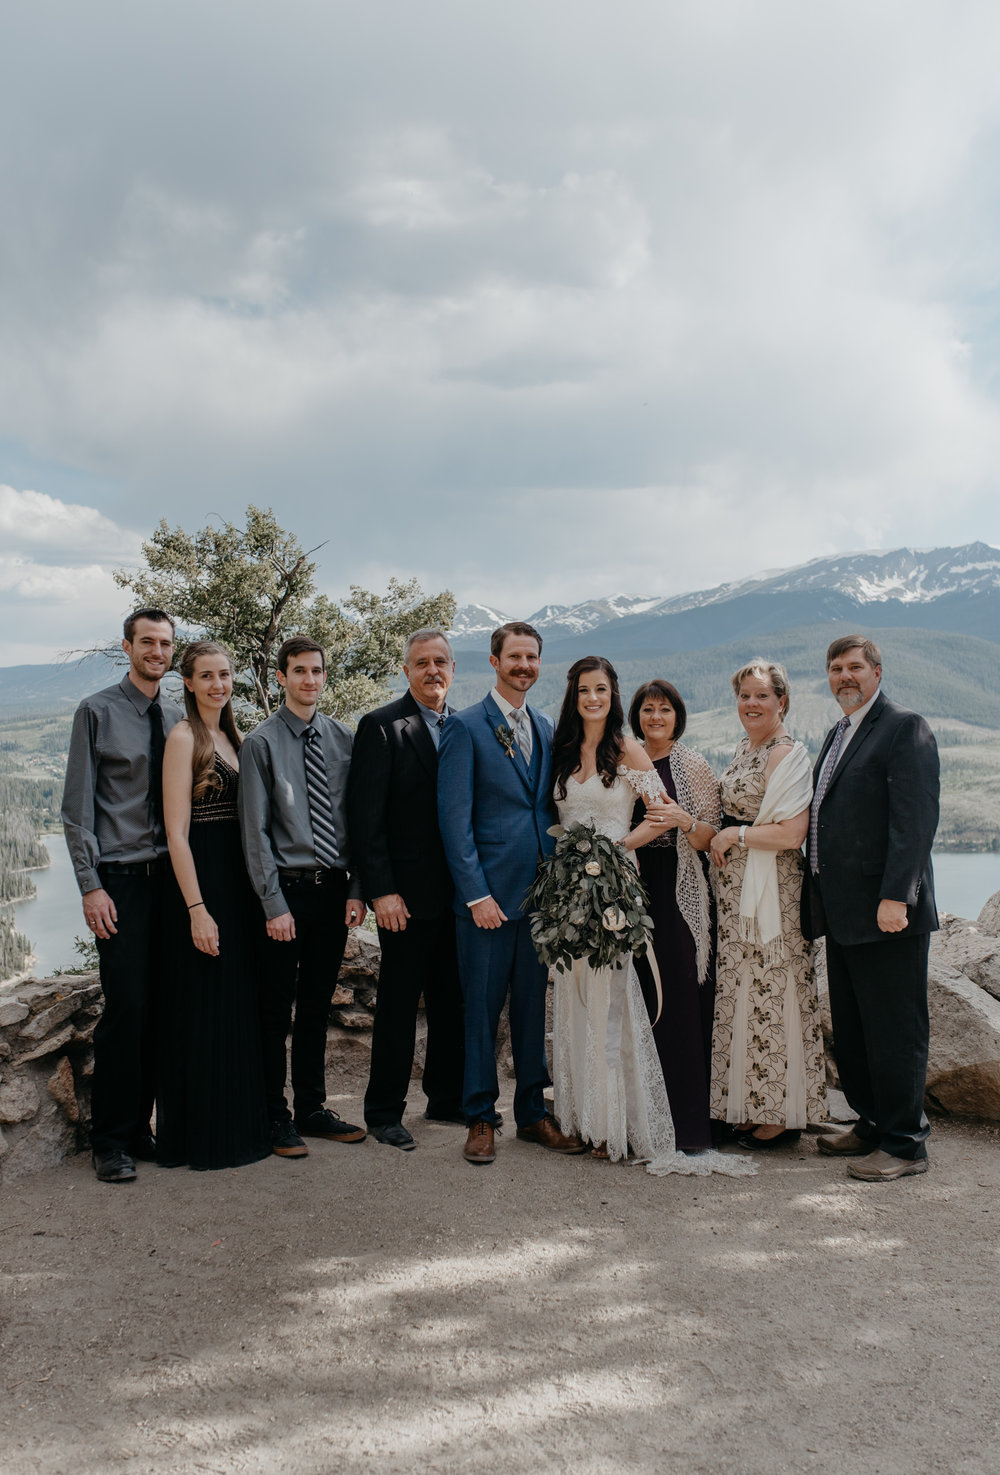 Destination wedding photographer based in Colorado.